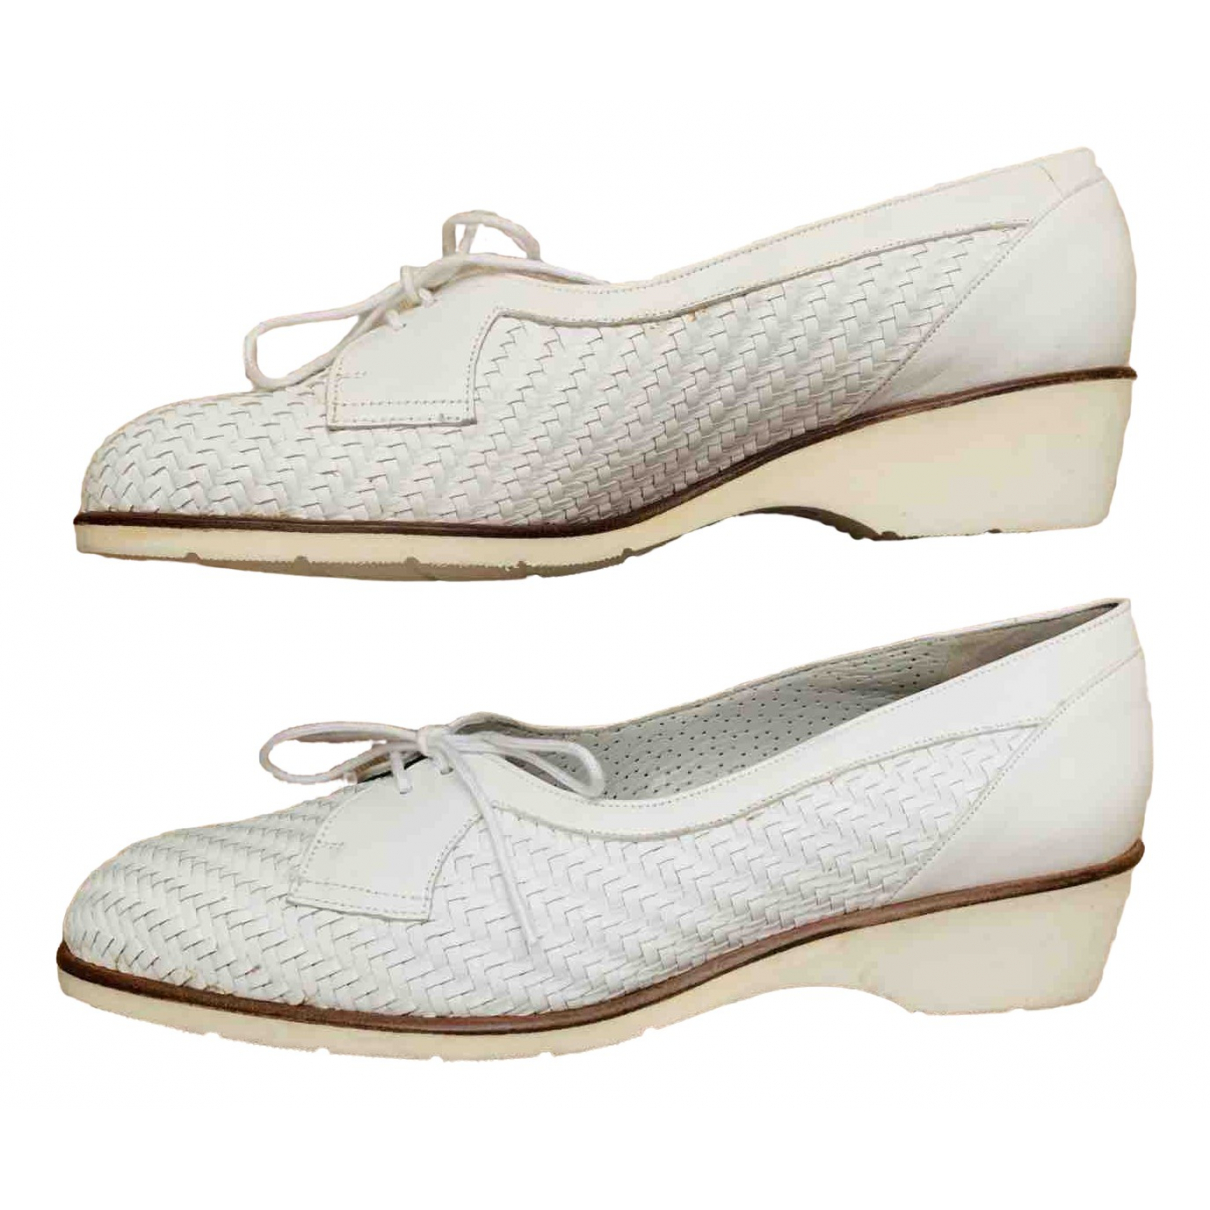 Bally \N White Leather Flats for Women 5 UK